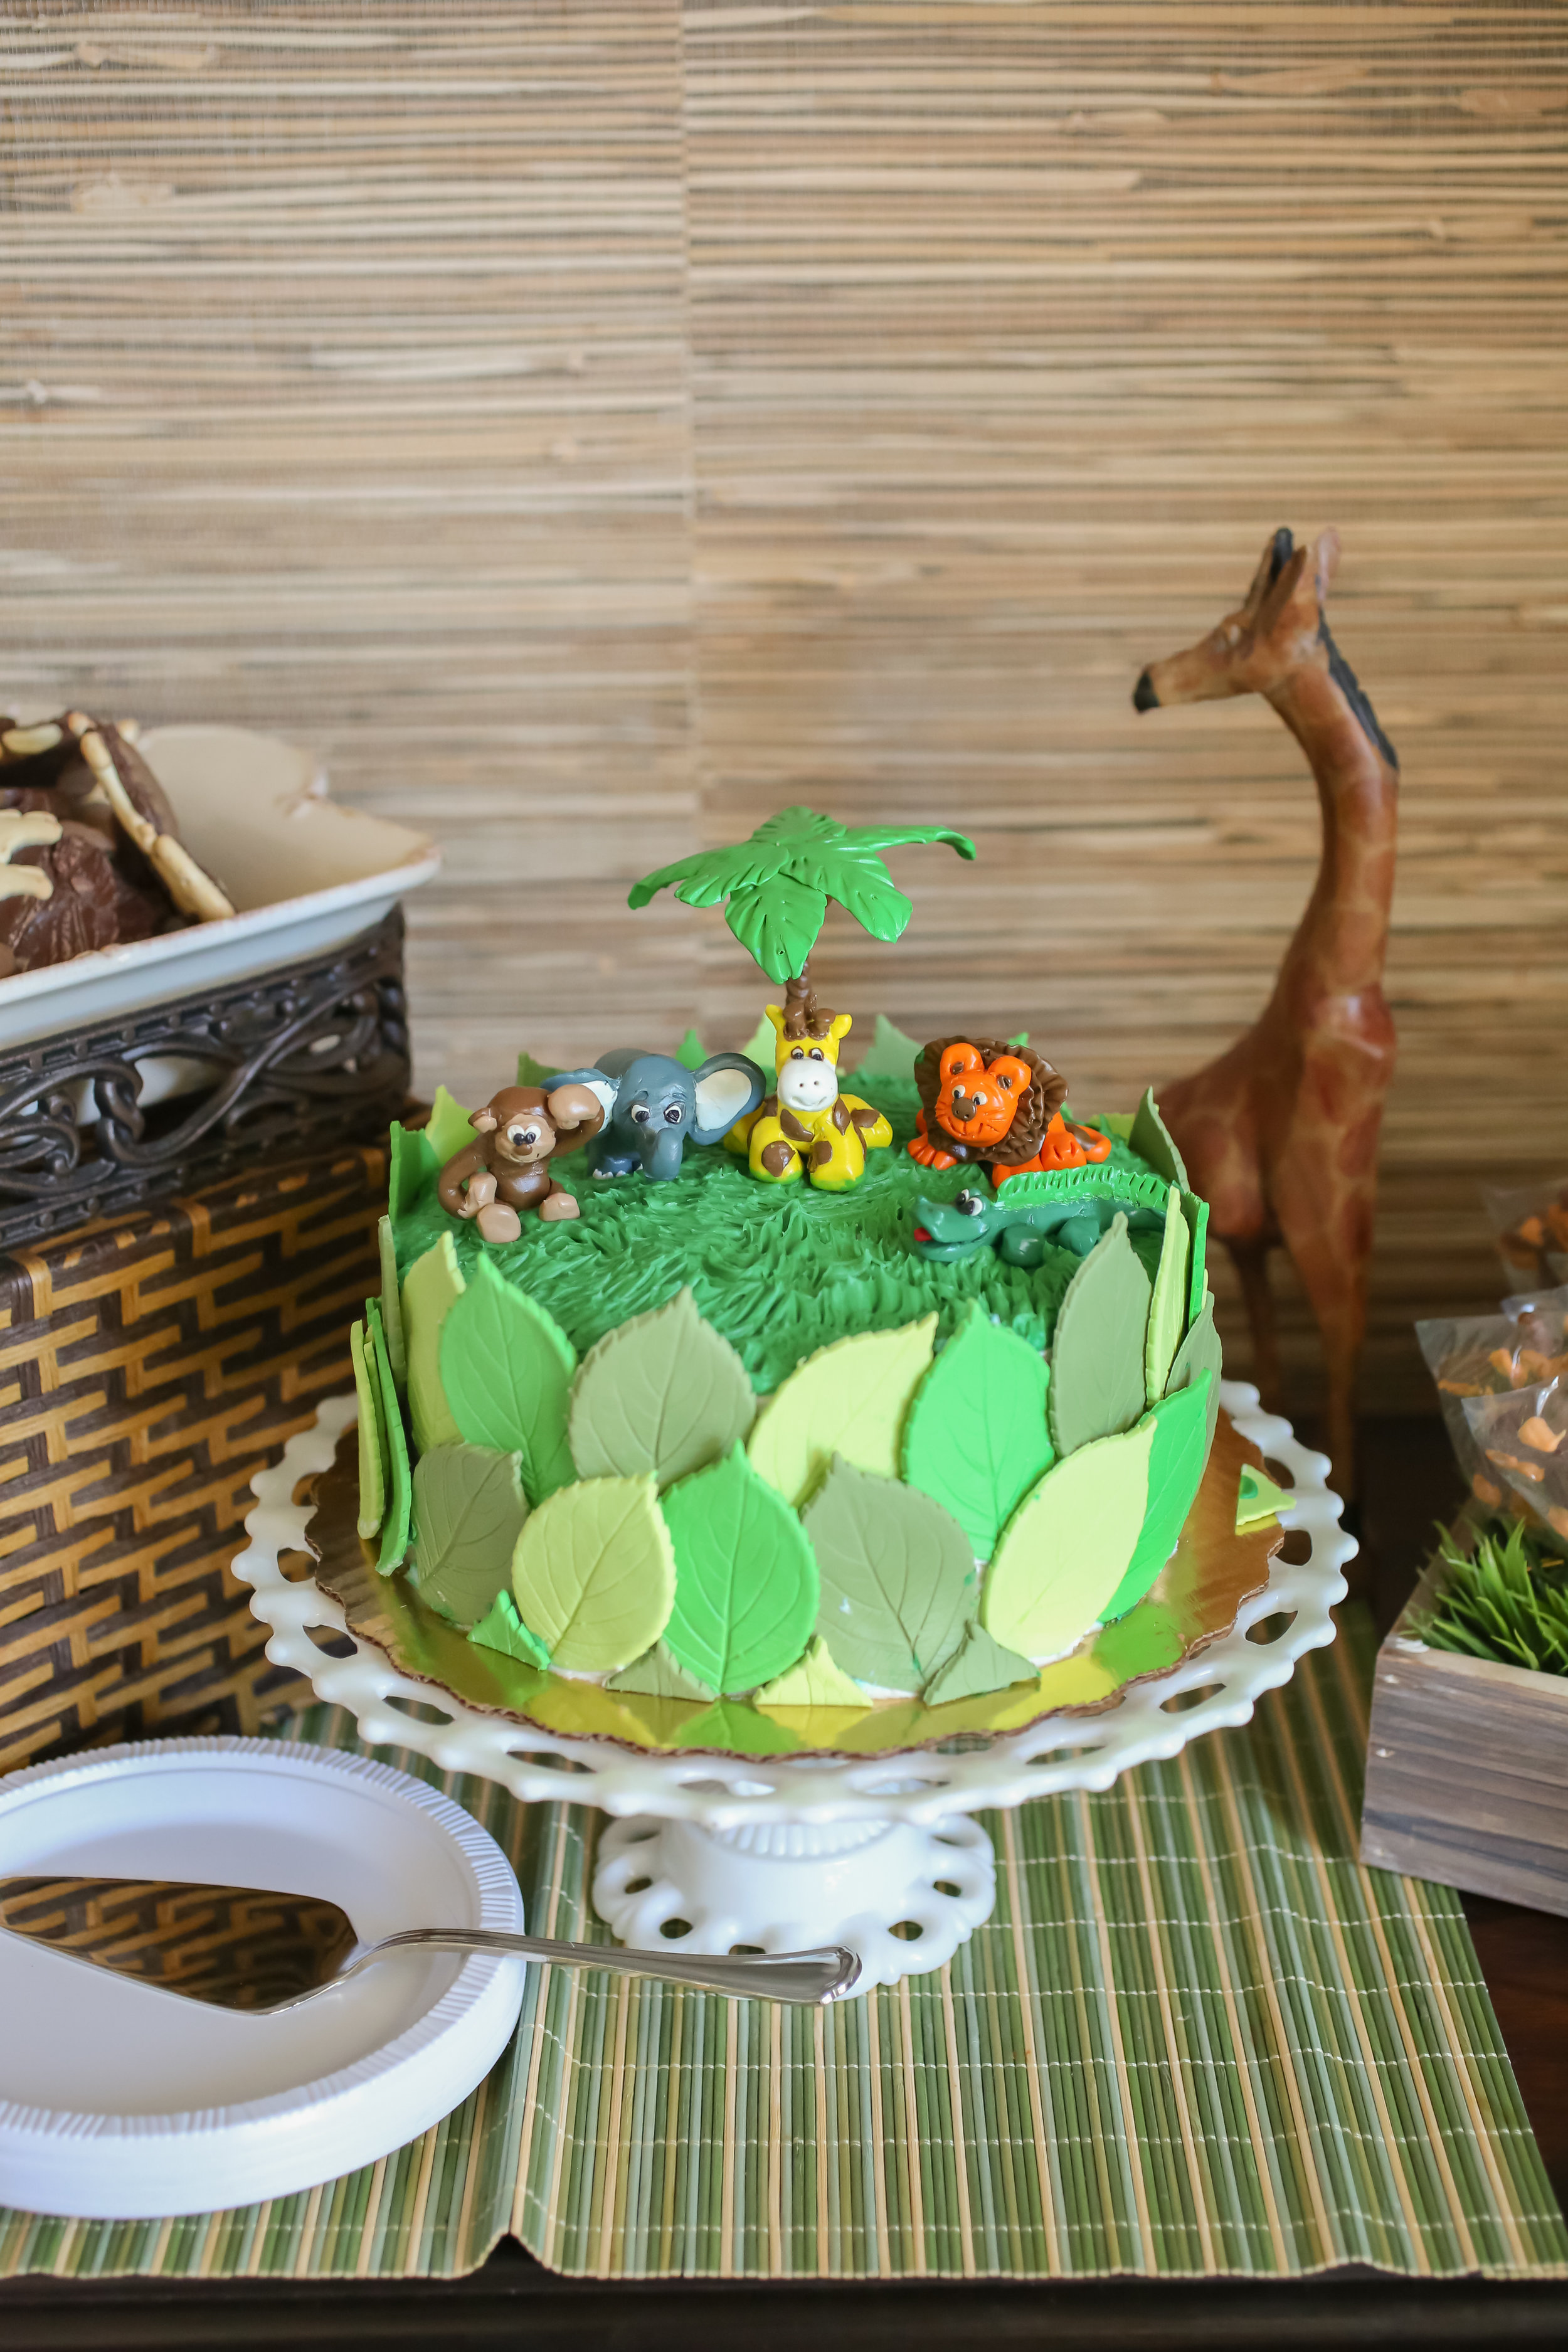 The star of the show (besides the beautiful mommy-to-be!) was the marble cake with gumpaste leaves,topped with handmade clay animals sitting in buttercream grass!